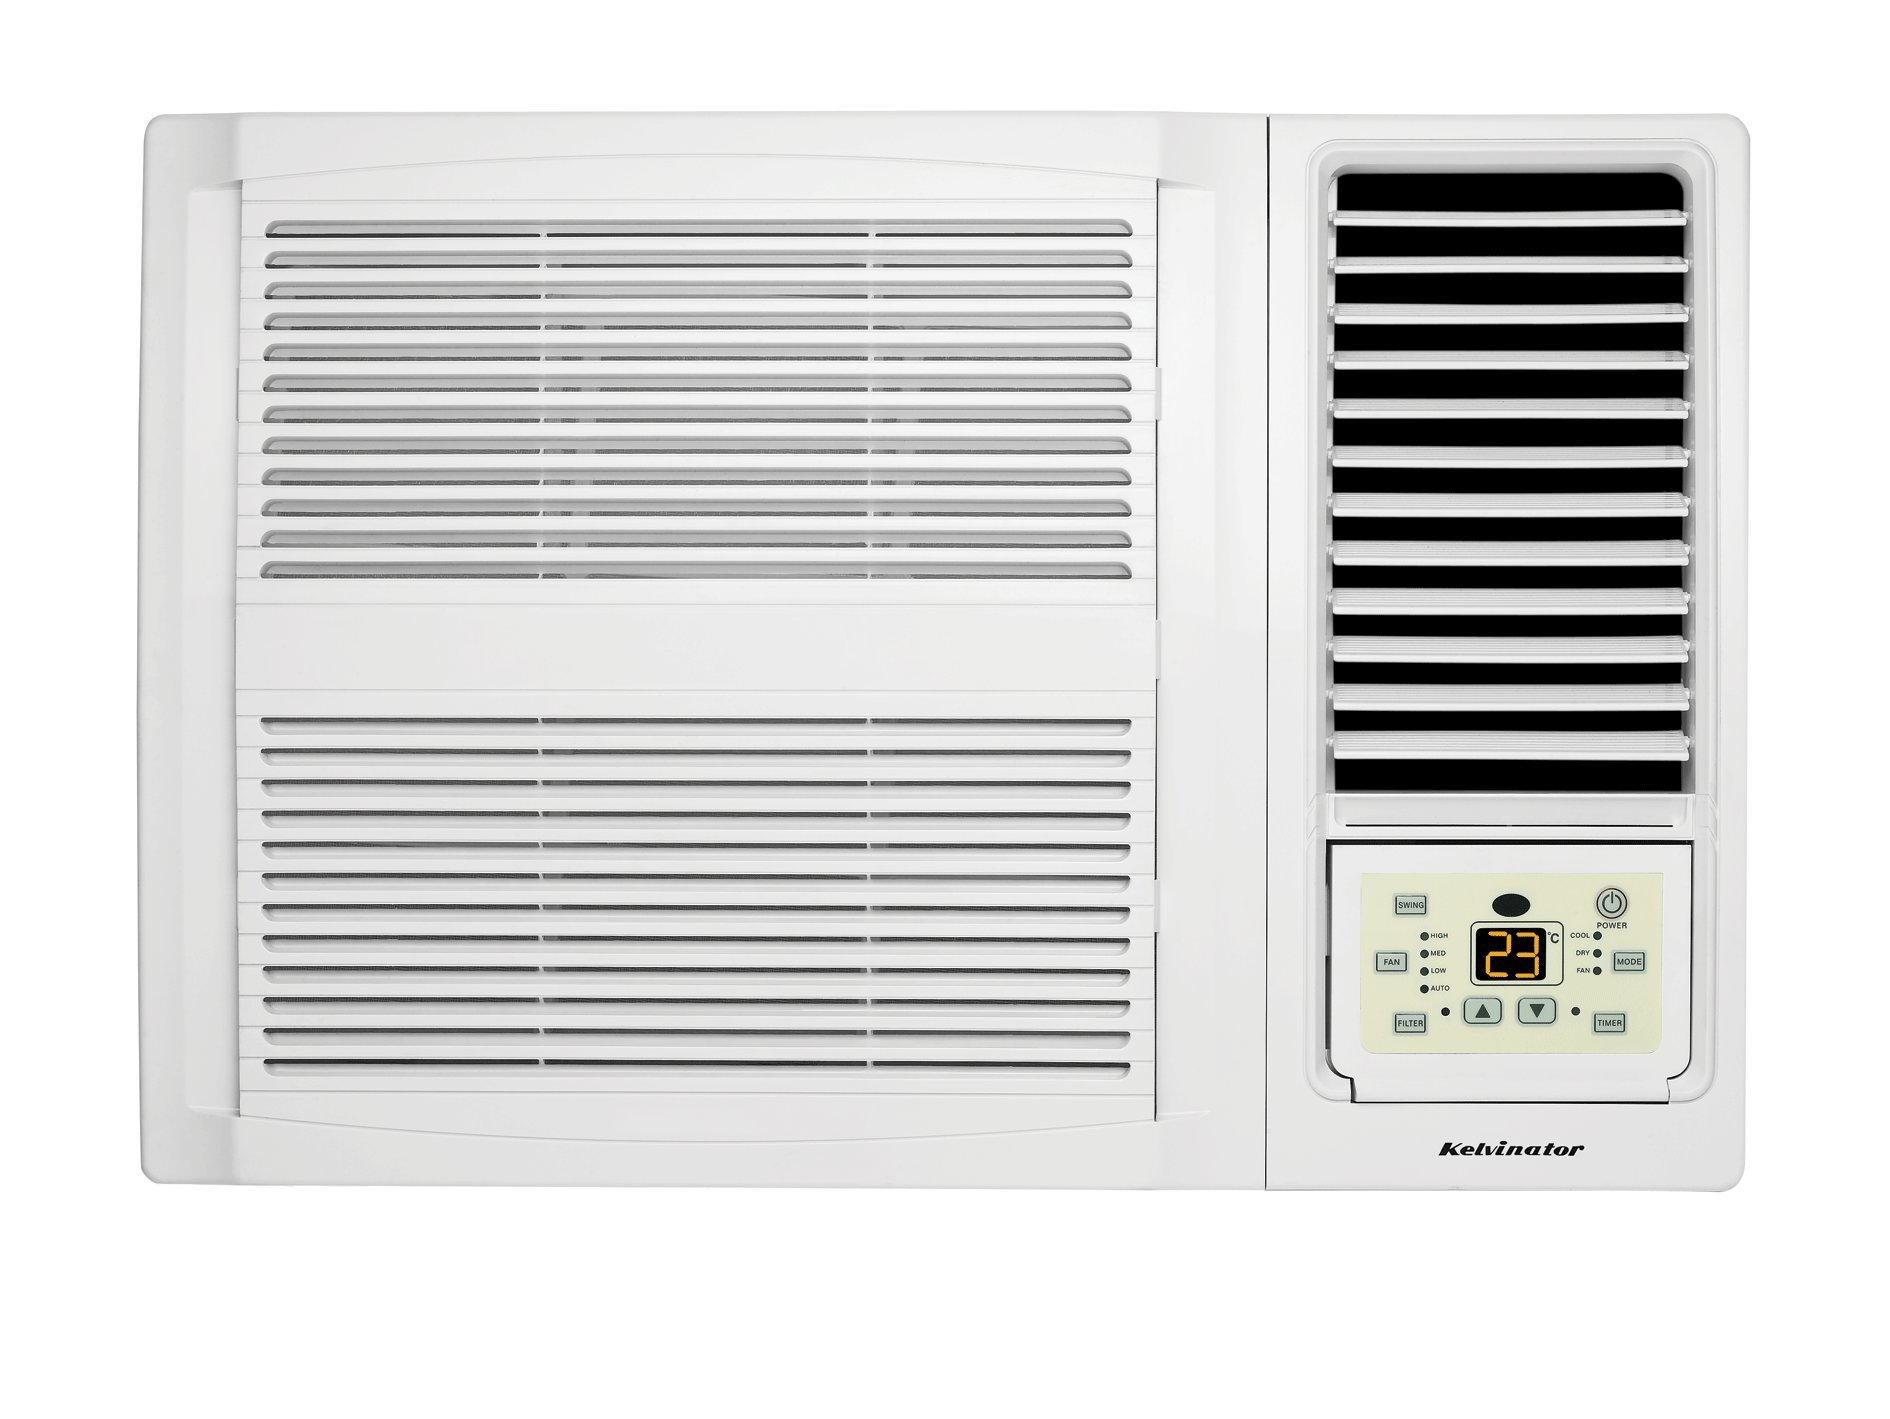 Kelvinator KWH53CRE 5.3kW Window Box Air Conditioner - FREE Delivery & Price Match* image